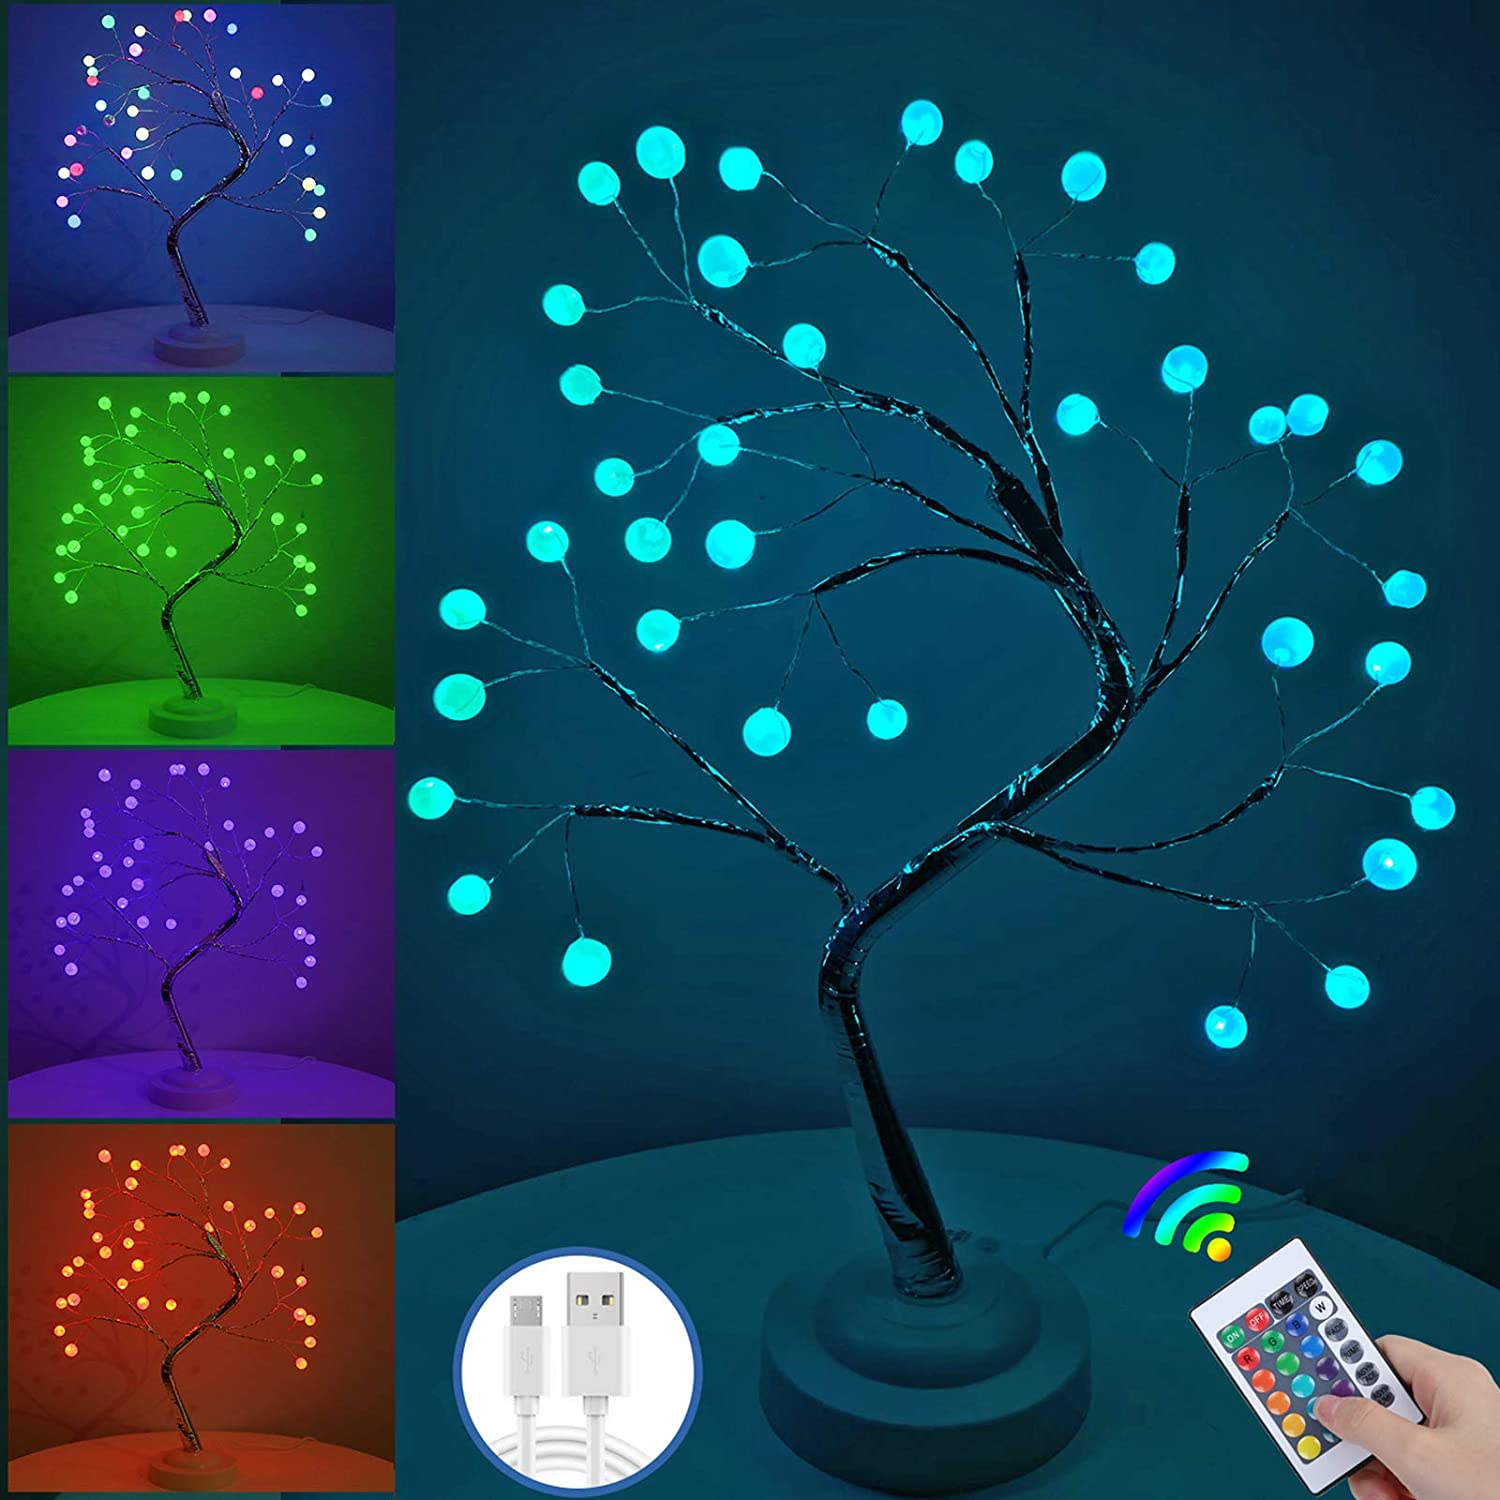 Home Decorations for Living Room Decor - 16 Color Changing Artificial Bonsai Tree Night Light, with Timer, for Bedroom, Bedside Table Lamp, Christmas, Halloween, Party, House and Aesthetic Room Decor.